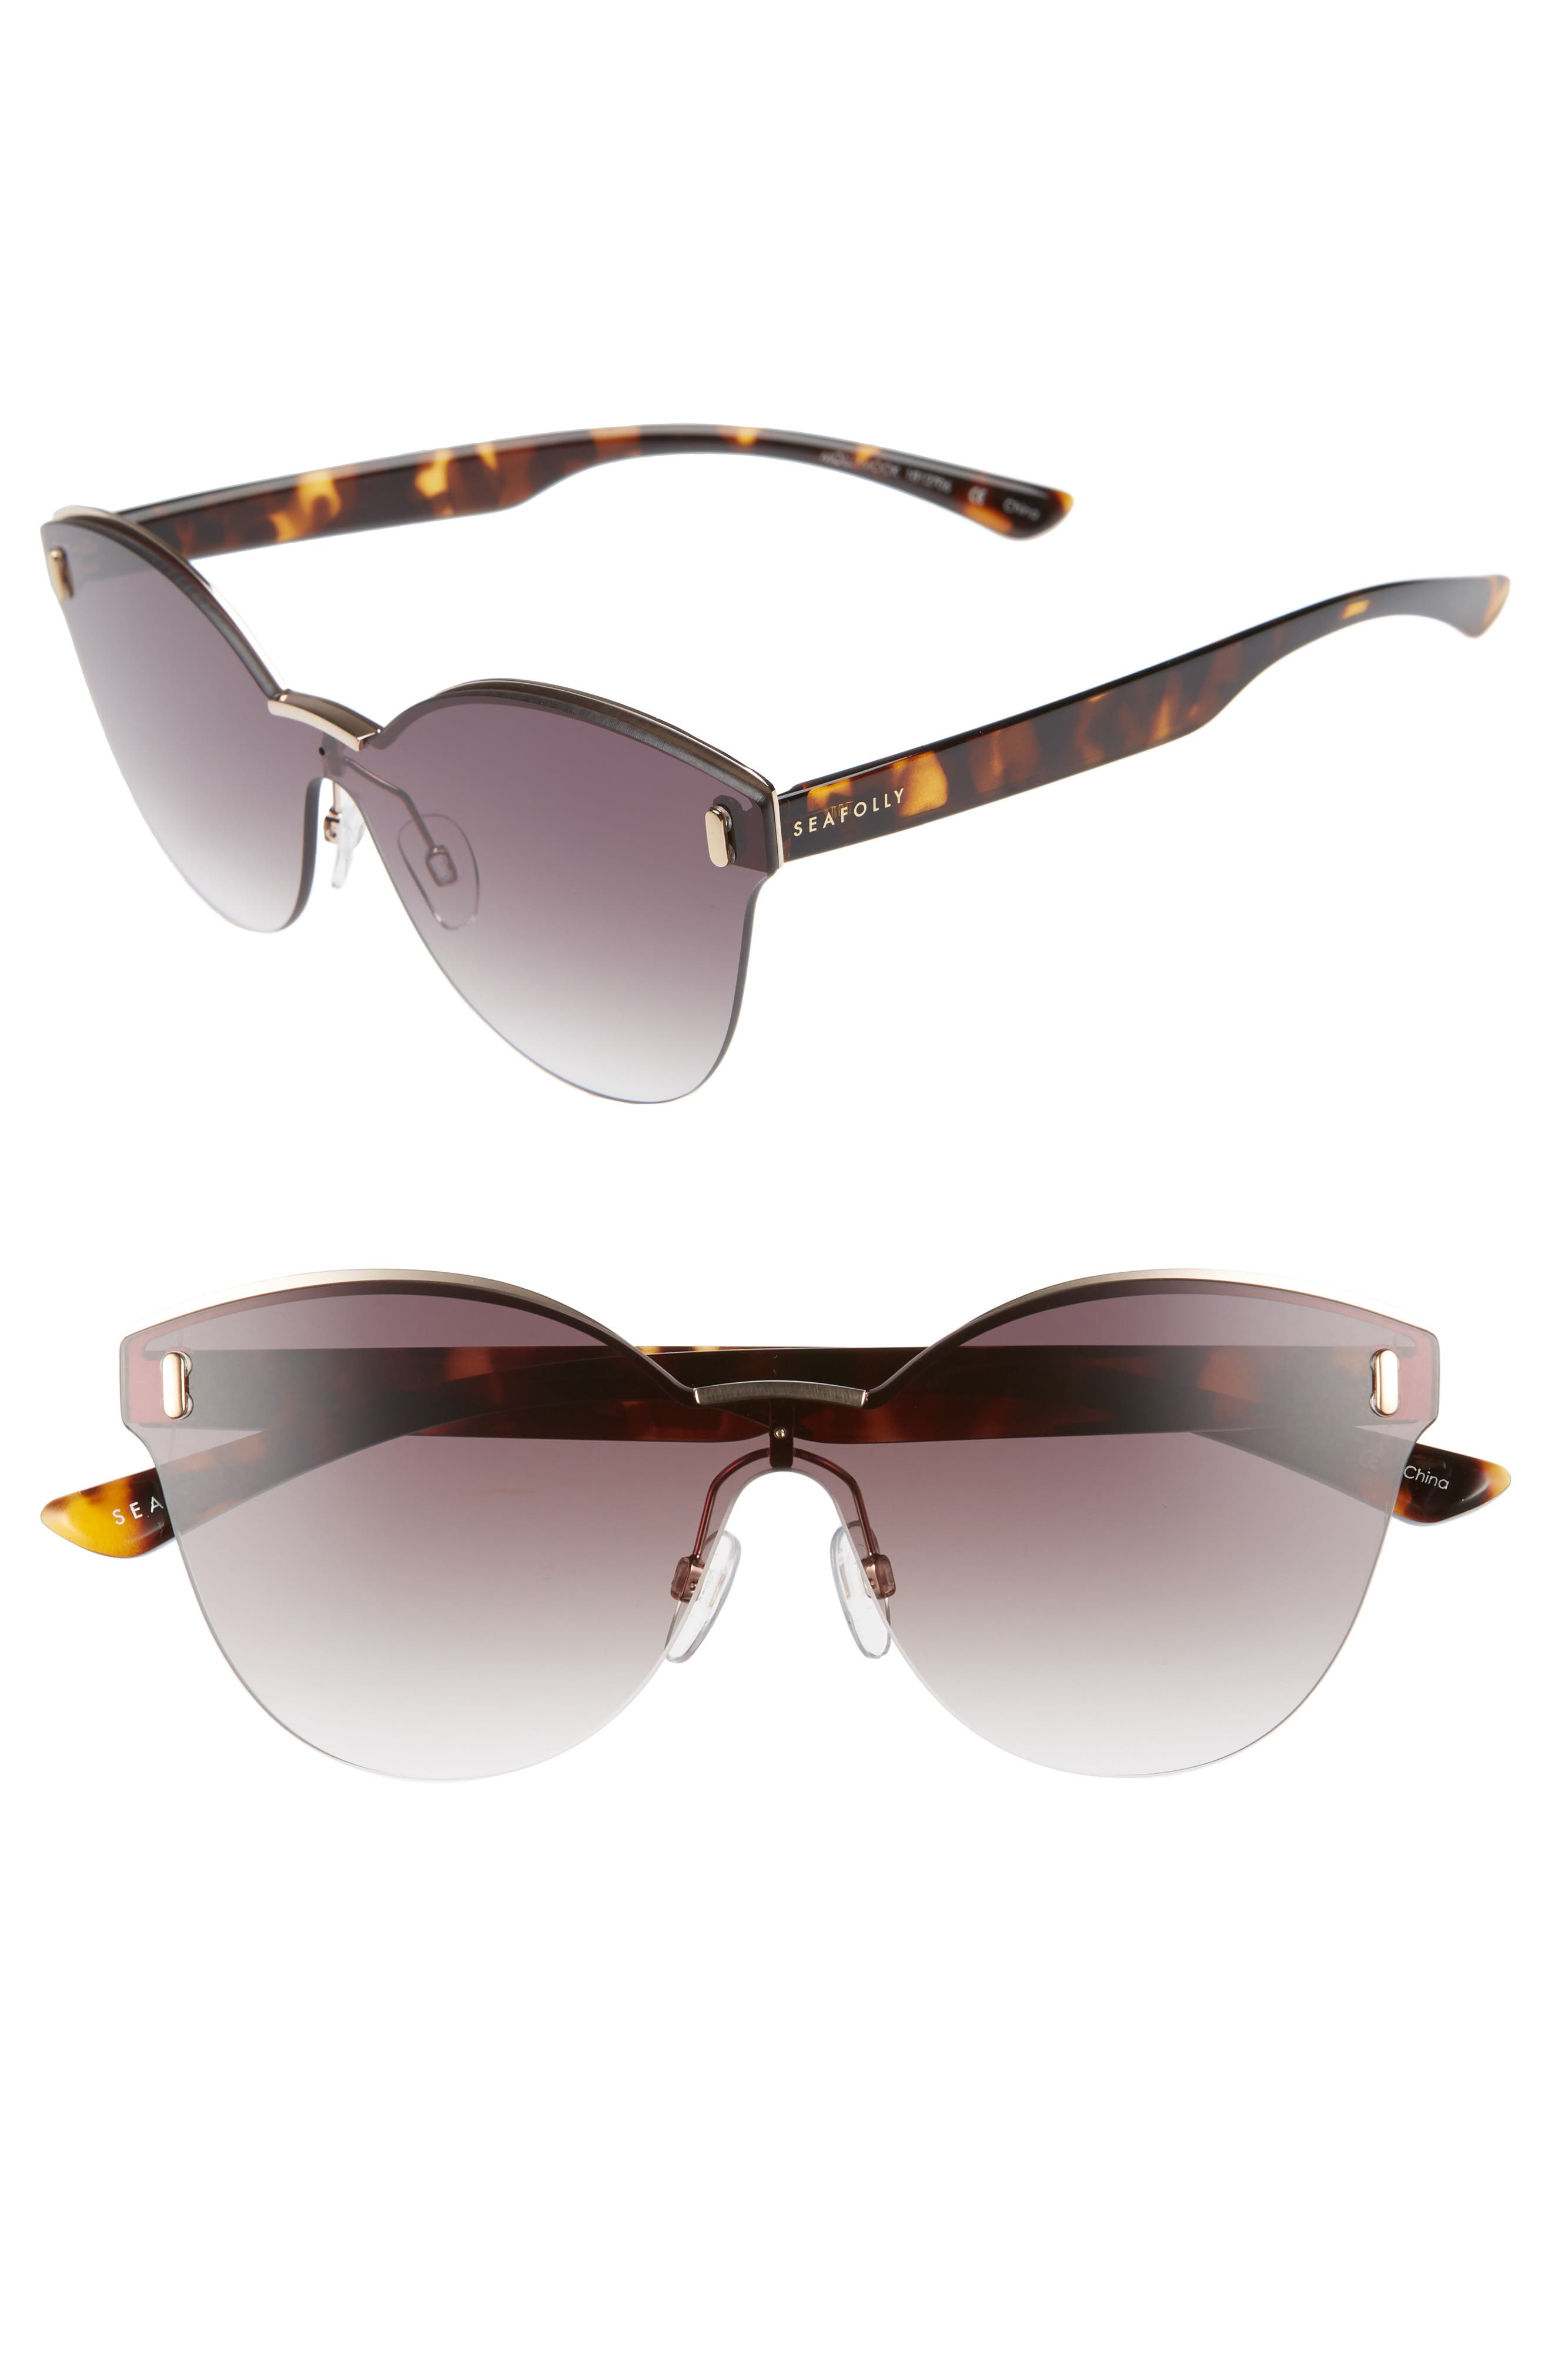 Mollymock 66mm Cat Eye Sunglasses by Seafolly